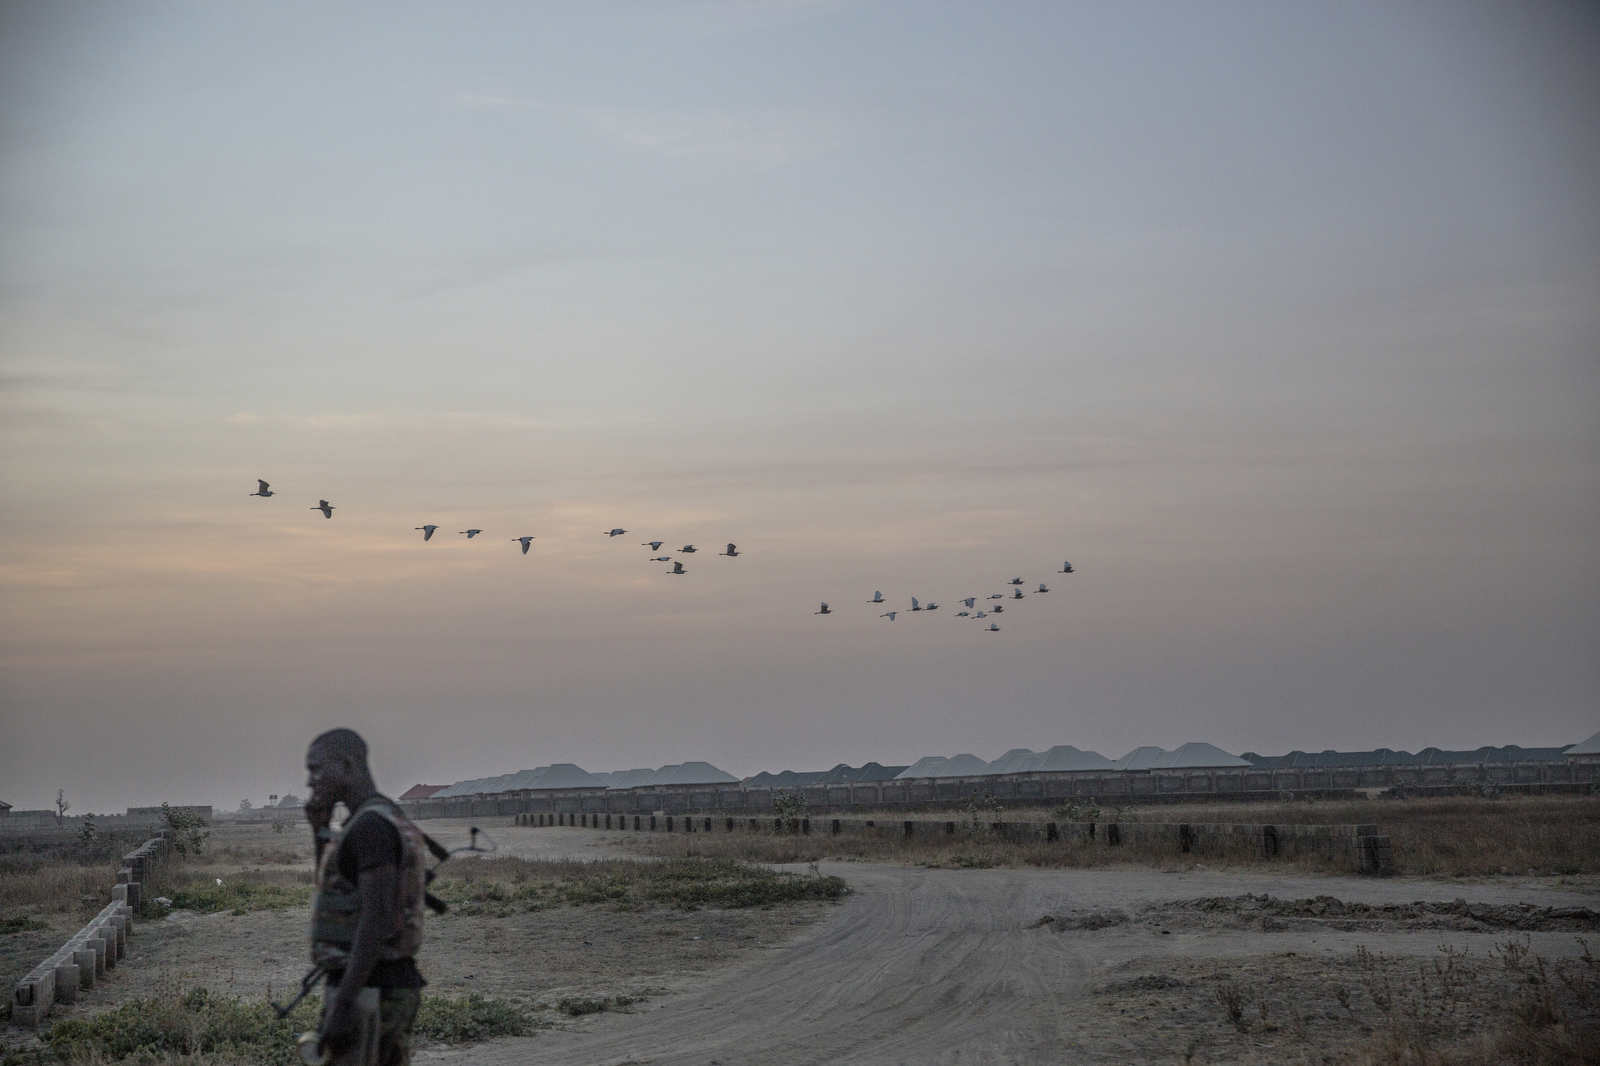 A solider at dusk near the edges of Maiduguri.